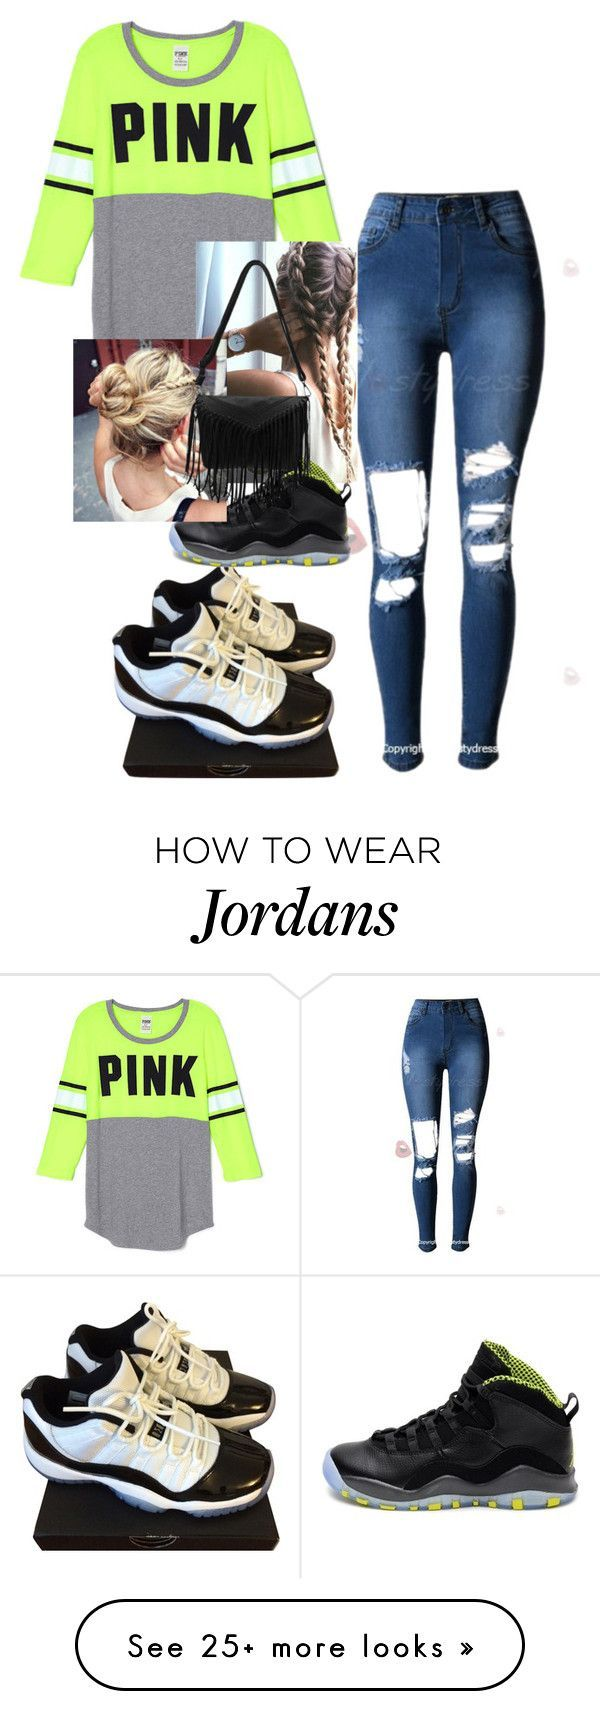 """Untitled #123"" by hassani on Polyvore featuring NIKE"